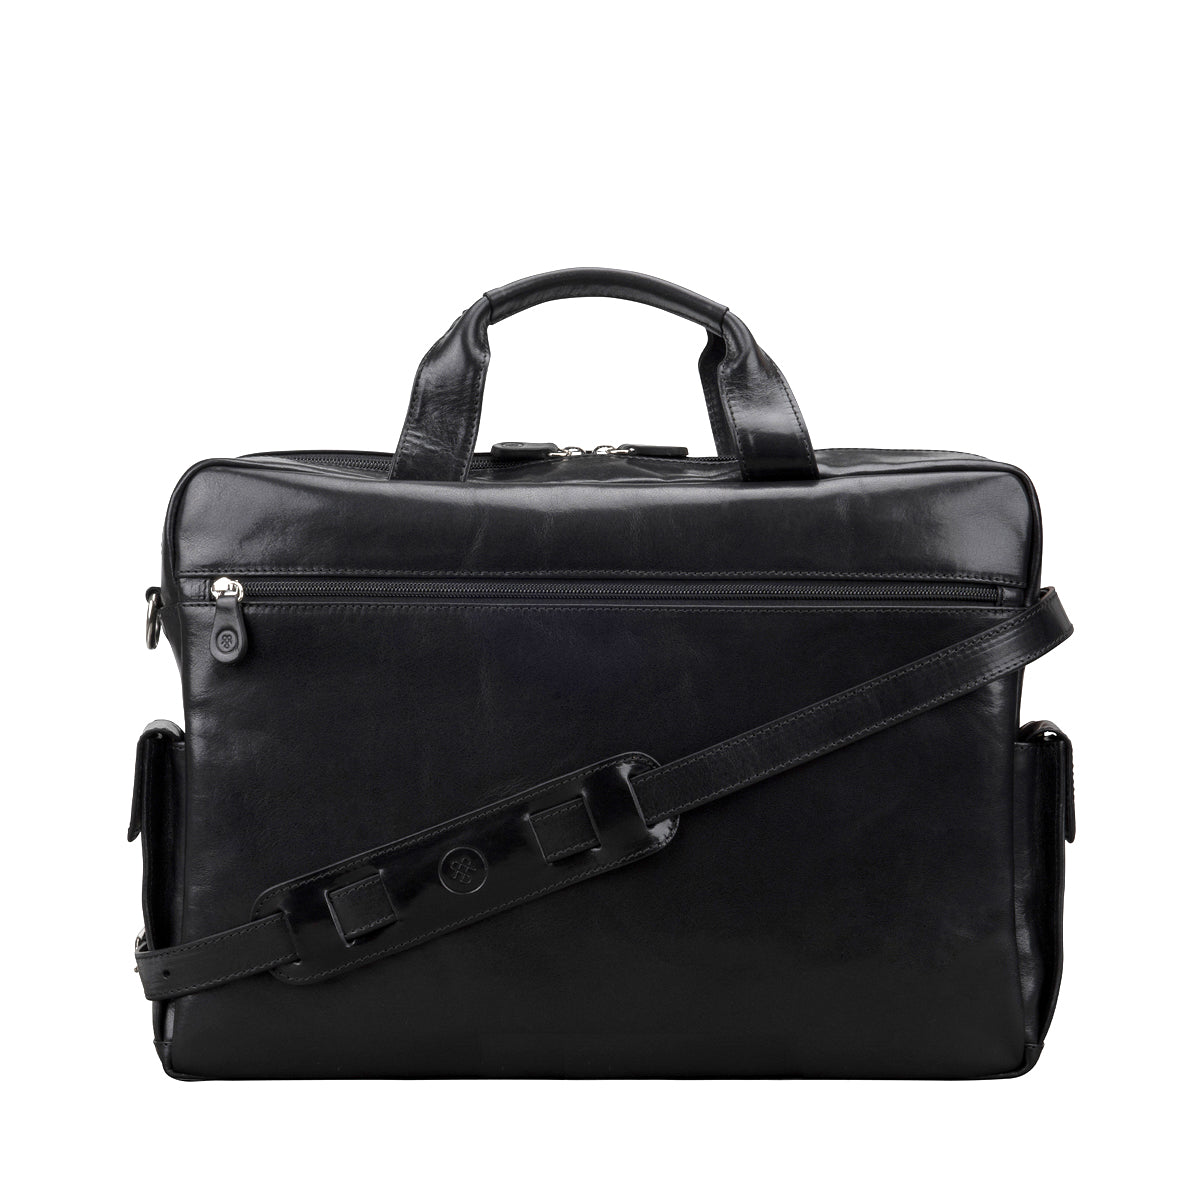 Image 4 of the 'Lagaro' Black Veg-Tanned Leather Briefcase